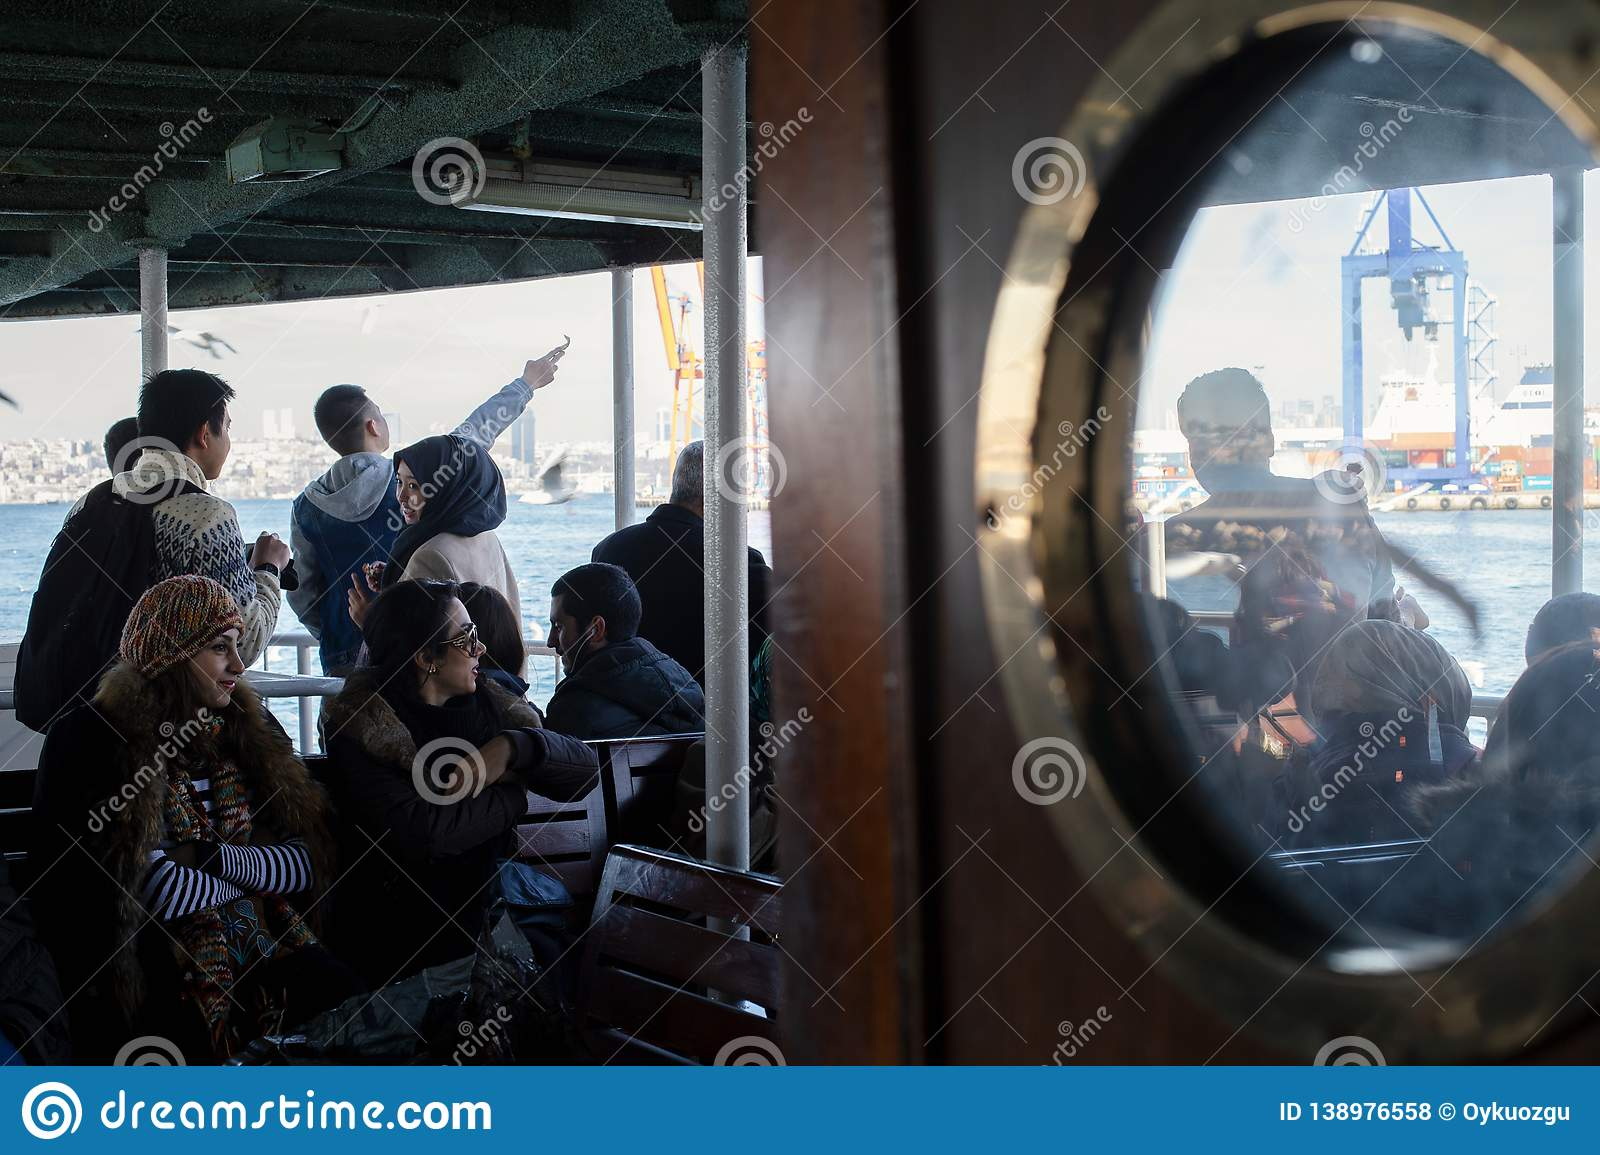 Island Ferry Ada Vapuru. Some of the ferry passengers feed seagulls. Passenger ferryboats from Istanbul sail regularly to the Pr. Istanbul / Turkey - 02/03/2016 royalty free stock photos